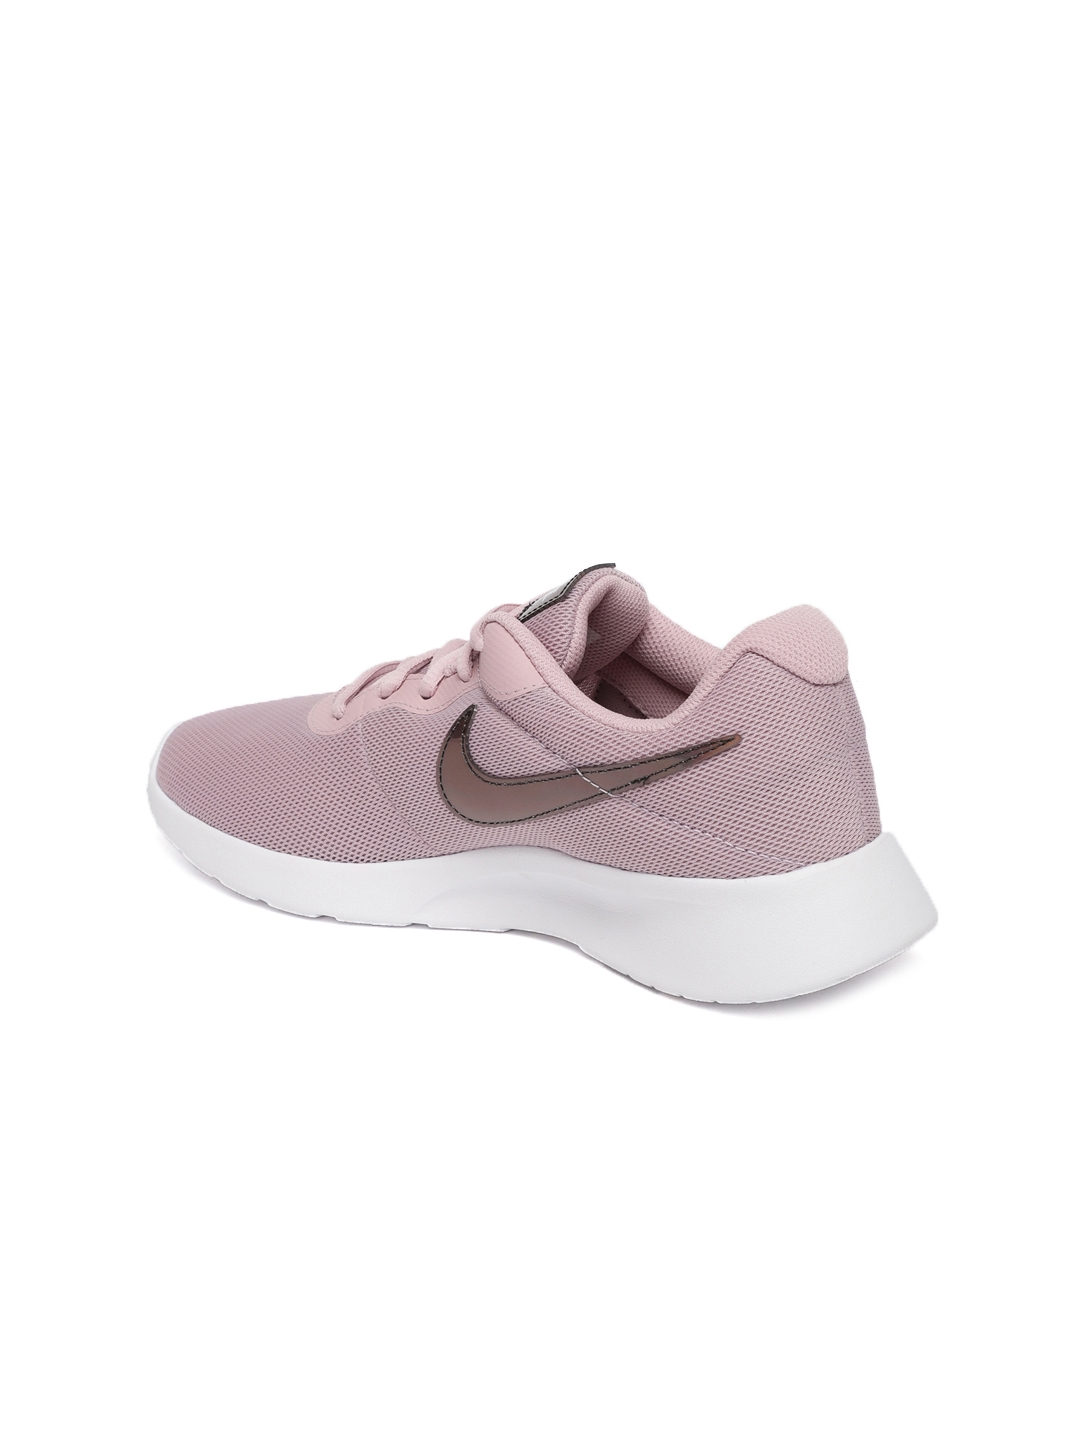 44ae0d717f35c6 Buy Nike Women Purple Tanjun Sneakers - Casual Shoes for Women ...